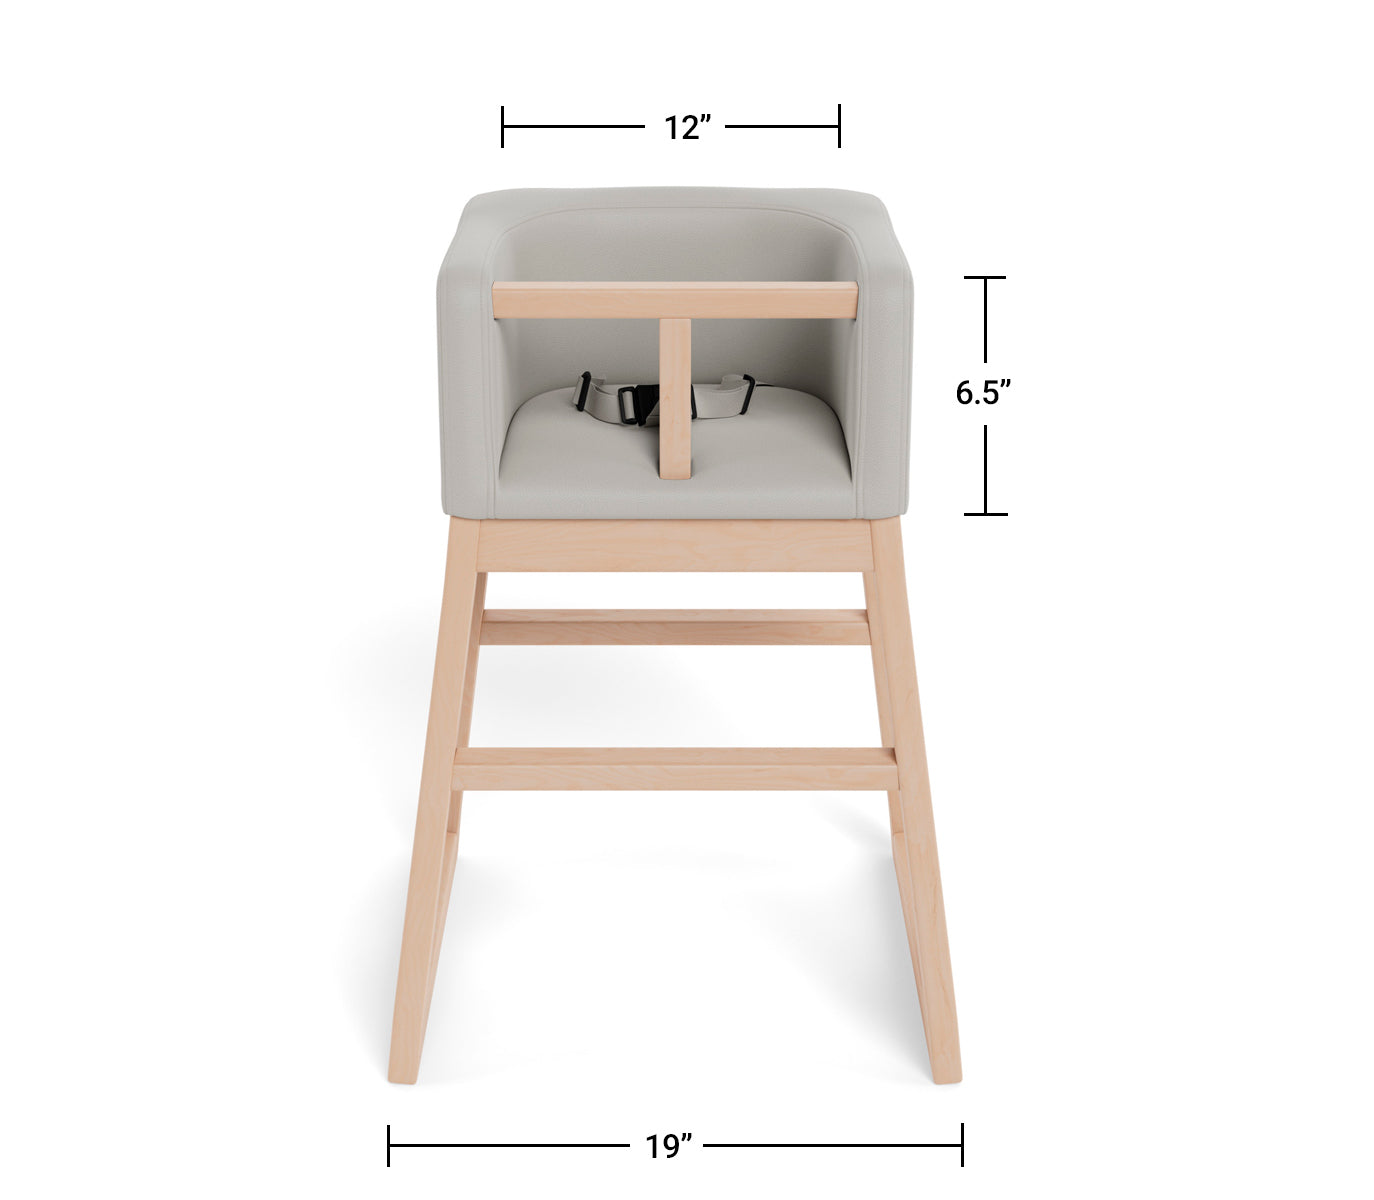 Modern Tavo High Chair Dimensions Front View